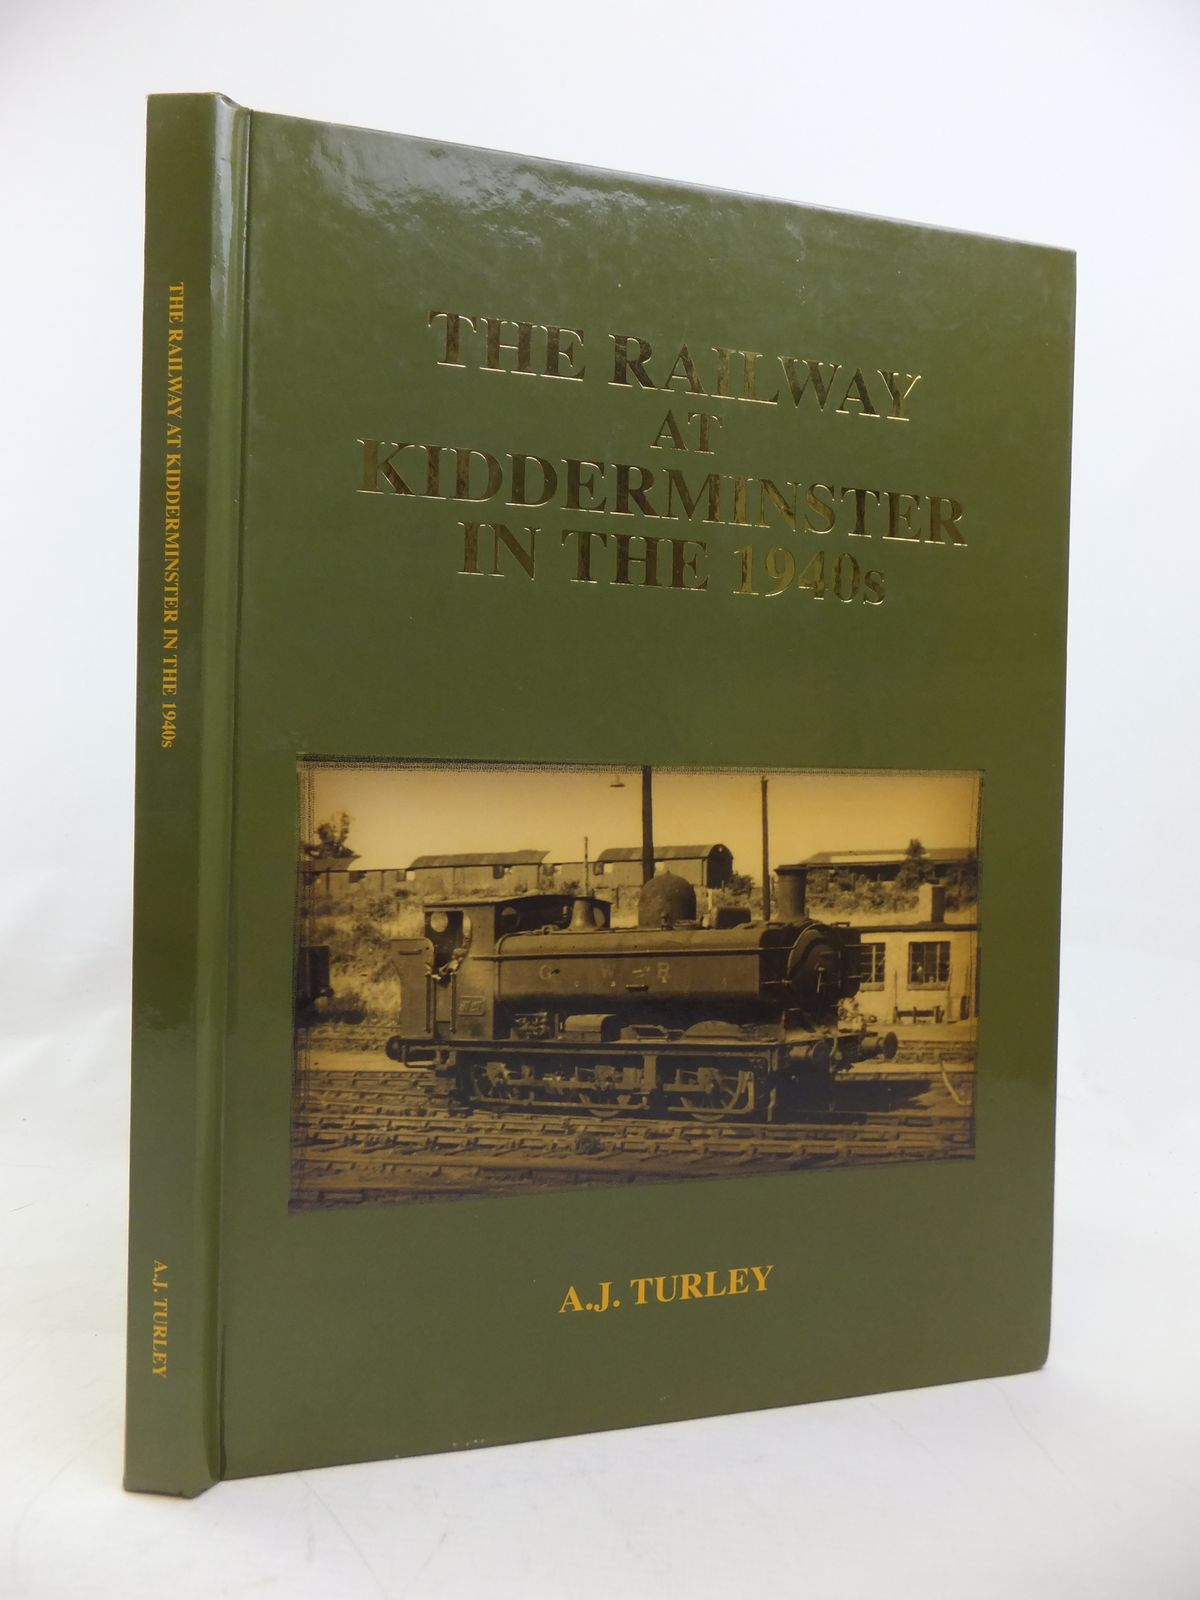 Photo of THE RAILWAY AT KIDDERMINSTER IN THE 1940S written by Turley, A.J. published by Adrian & Neil Turley (STOCK CODE: 1810619)  for sale by Stella & Rose's Books